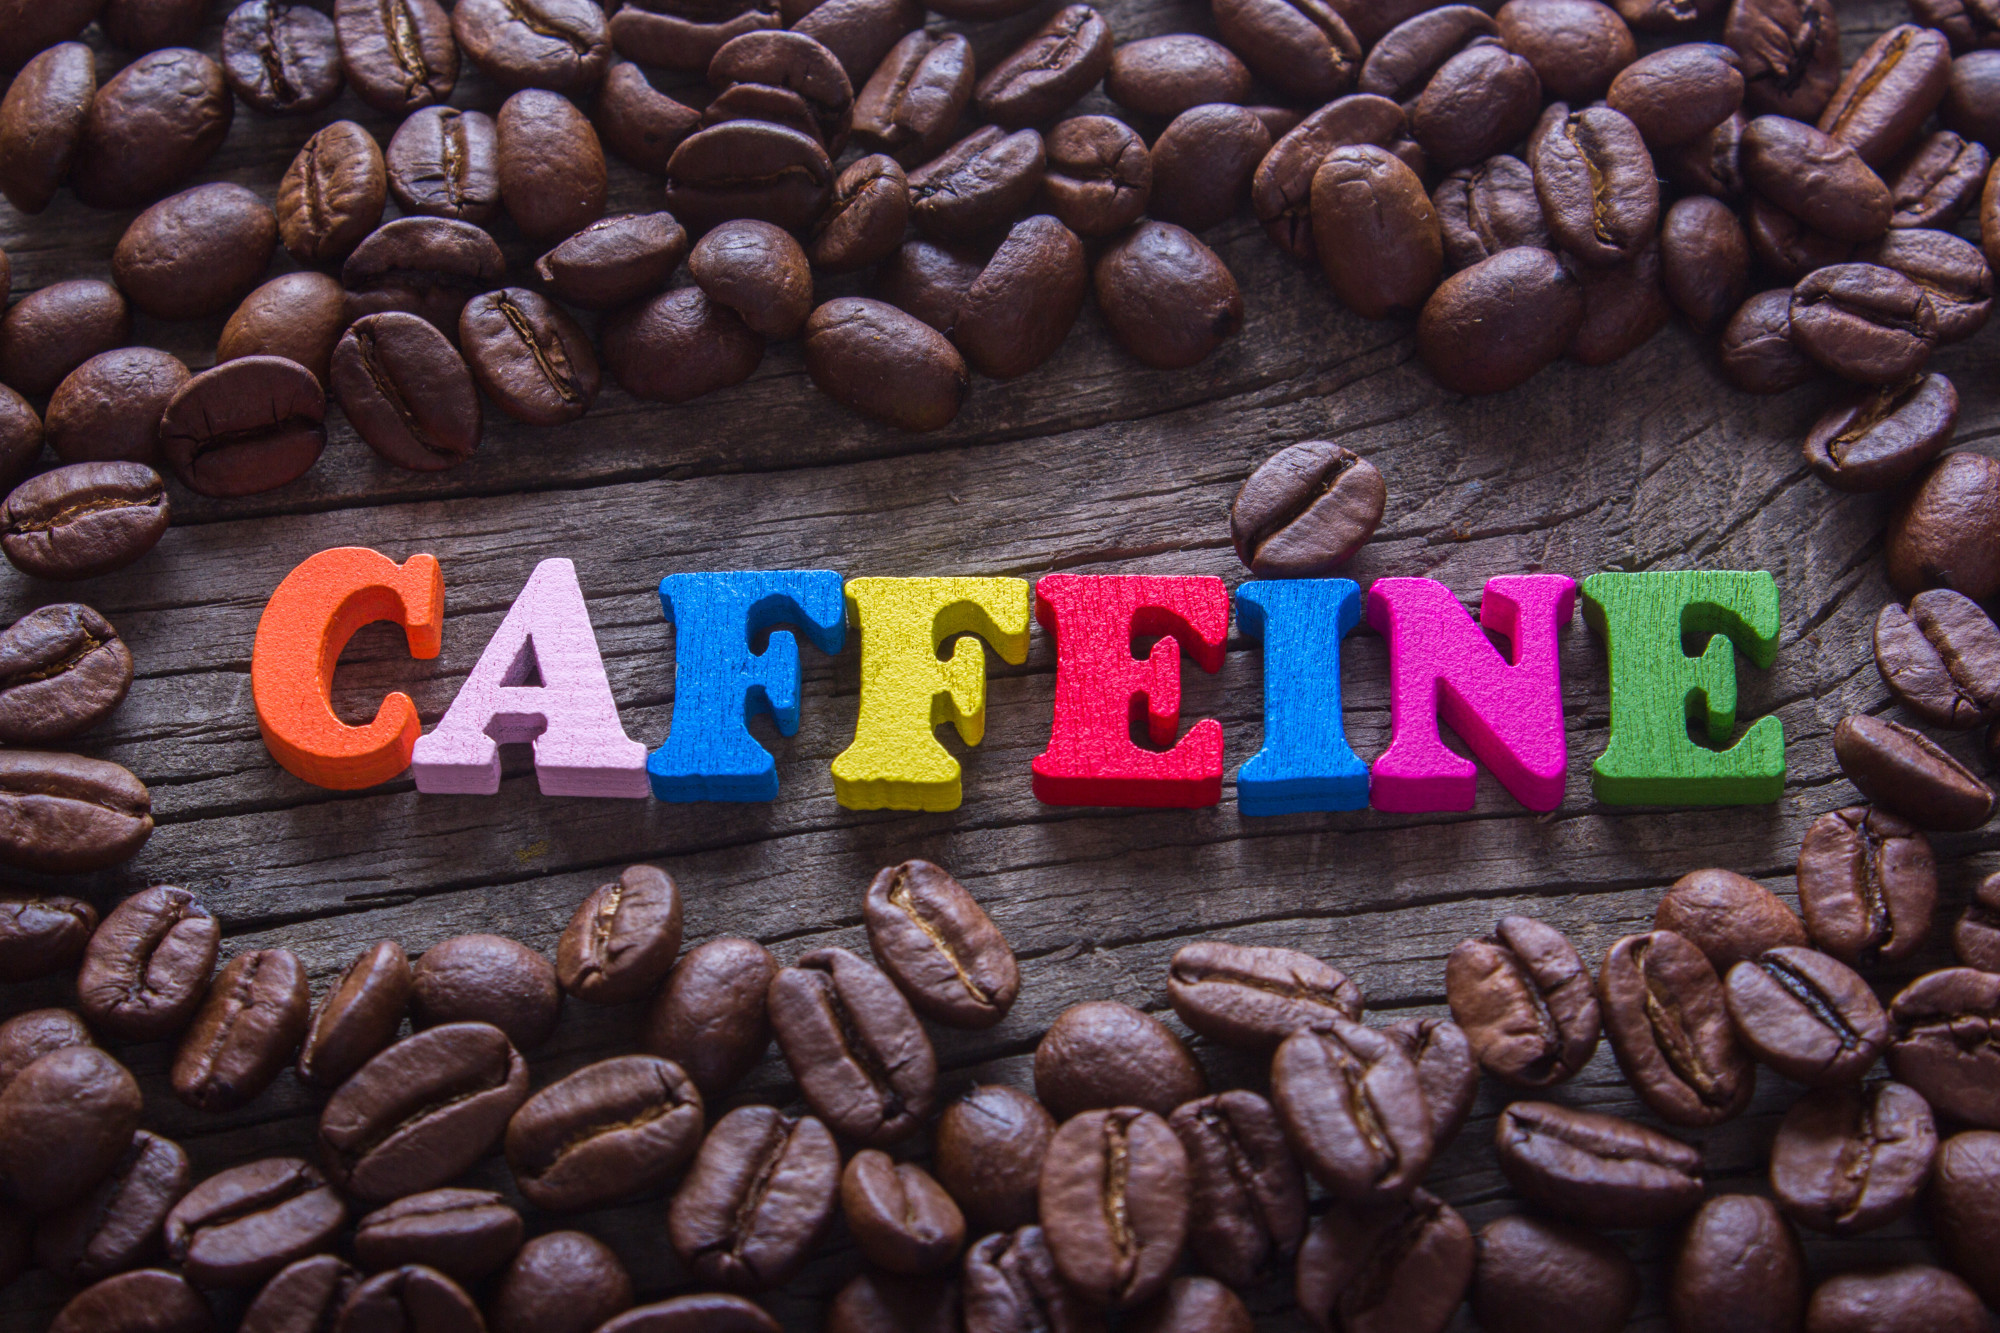 HOW TO USE CAFFEINE FOR EFFECTIVE WEIGHT LOSS